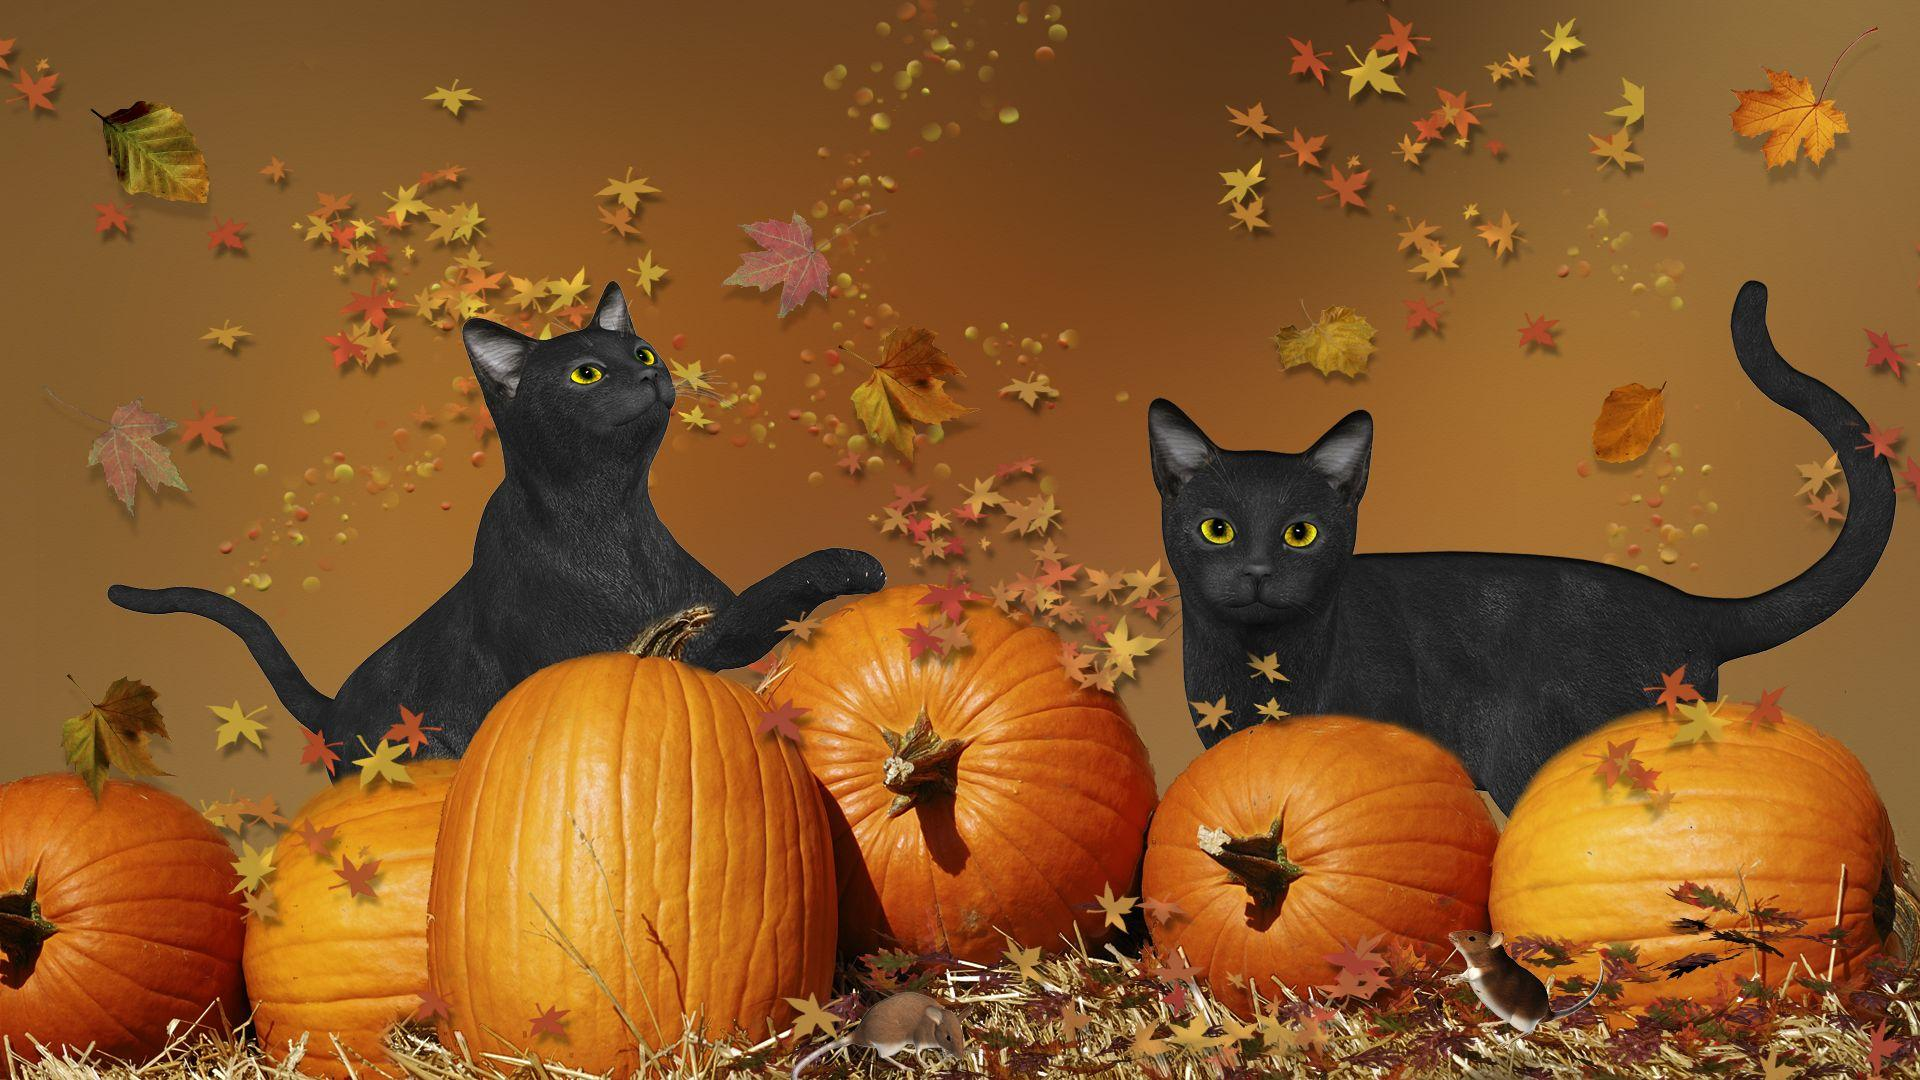 Halloween Cat HD Wallpapers – Halloween Wizard